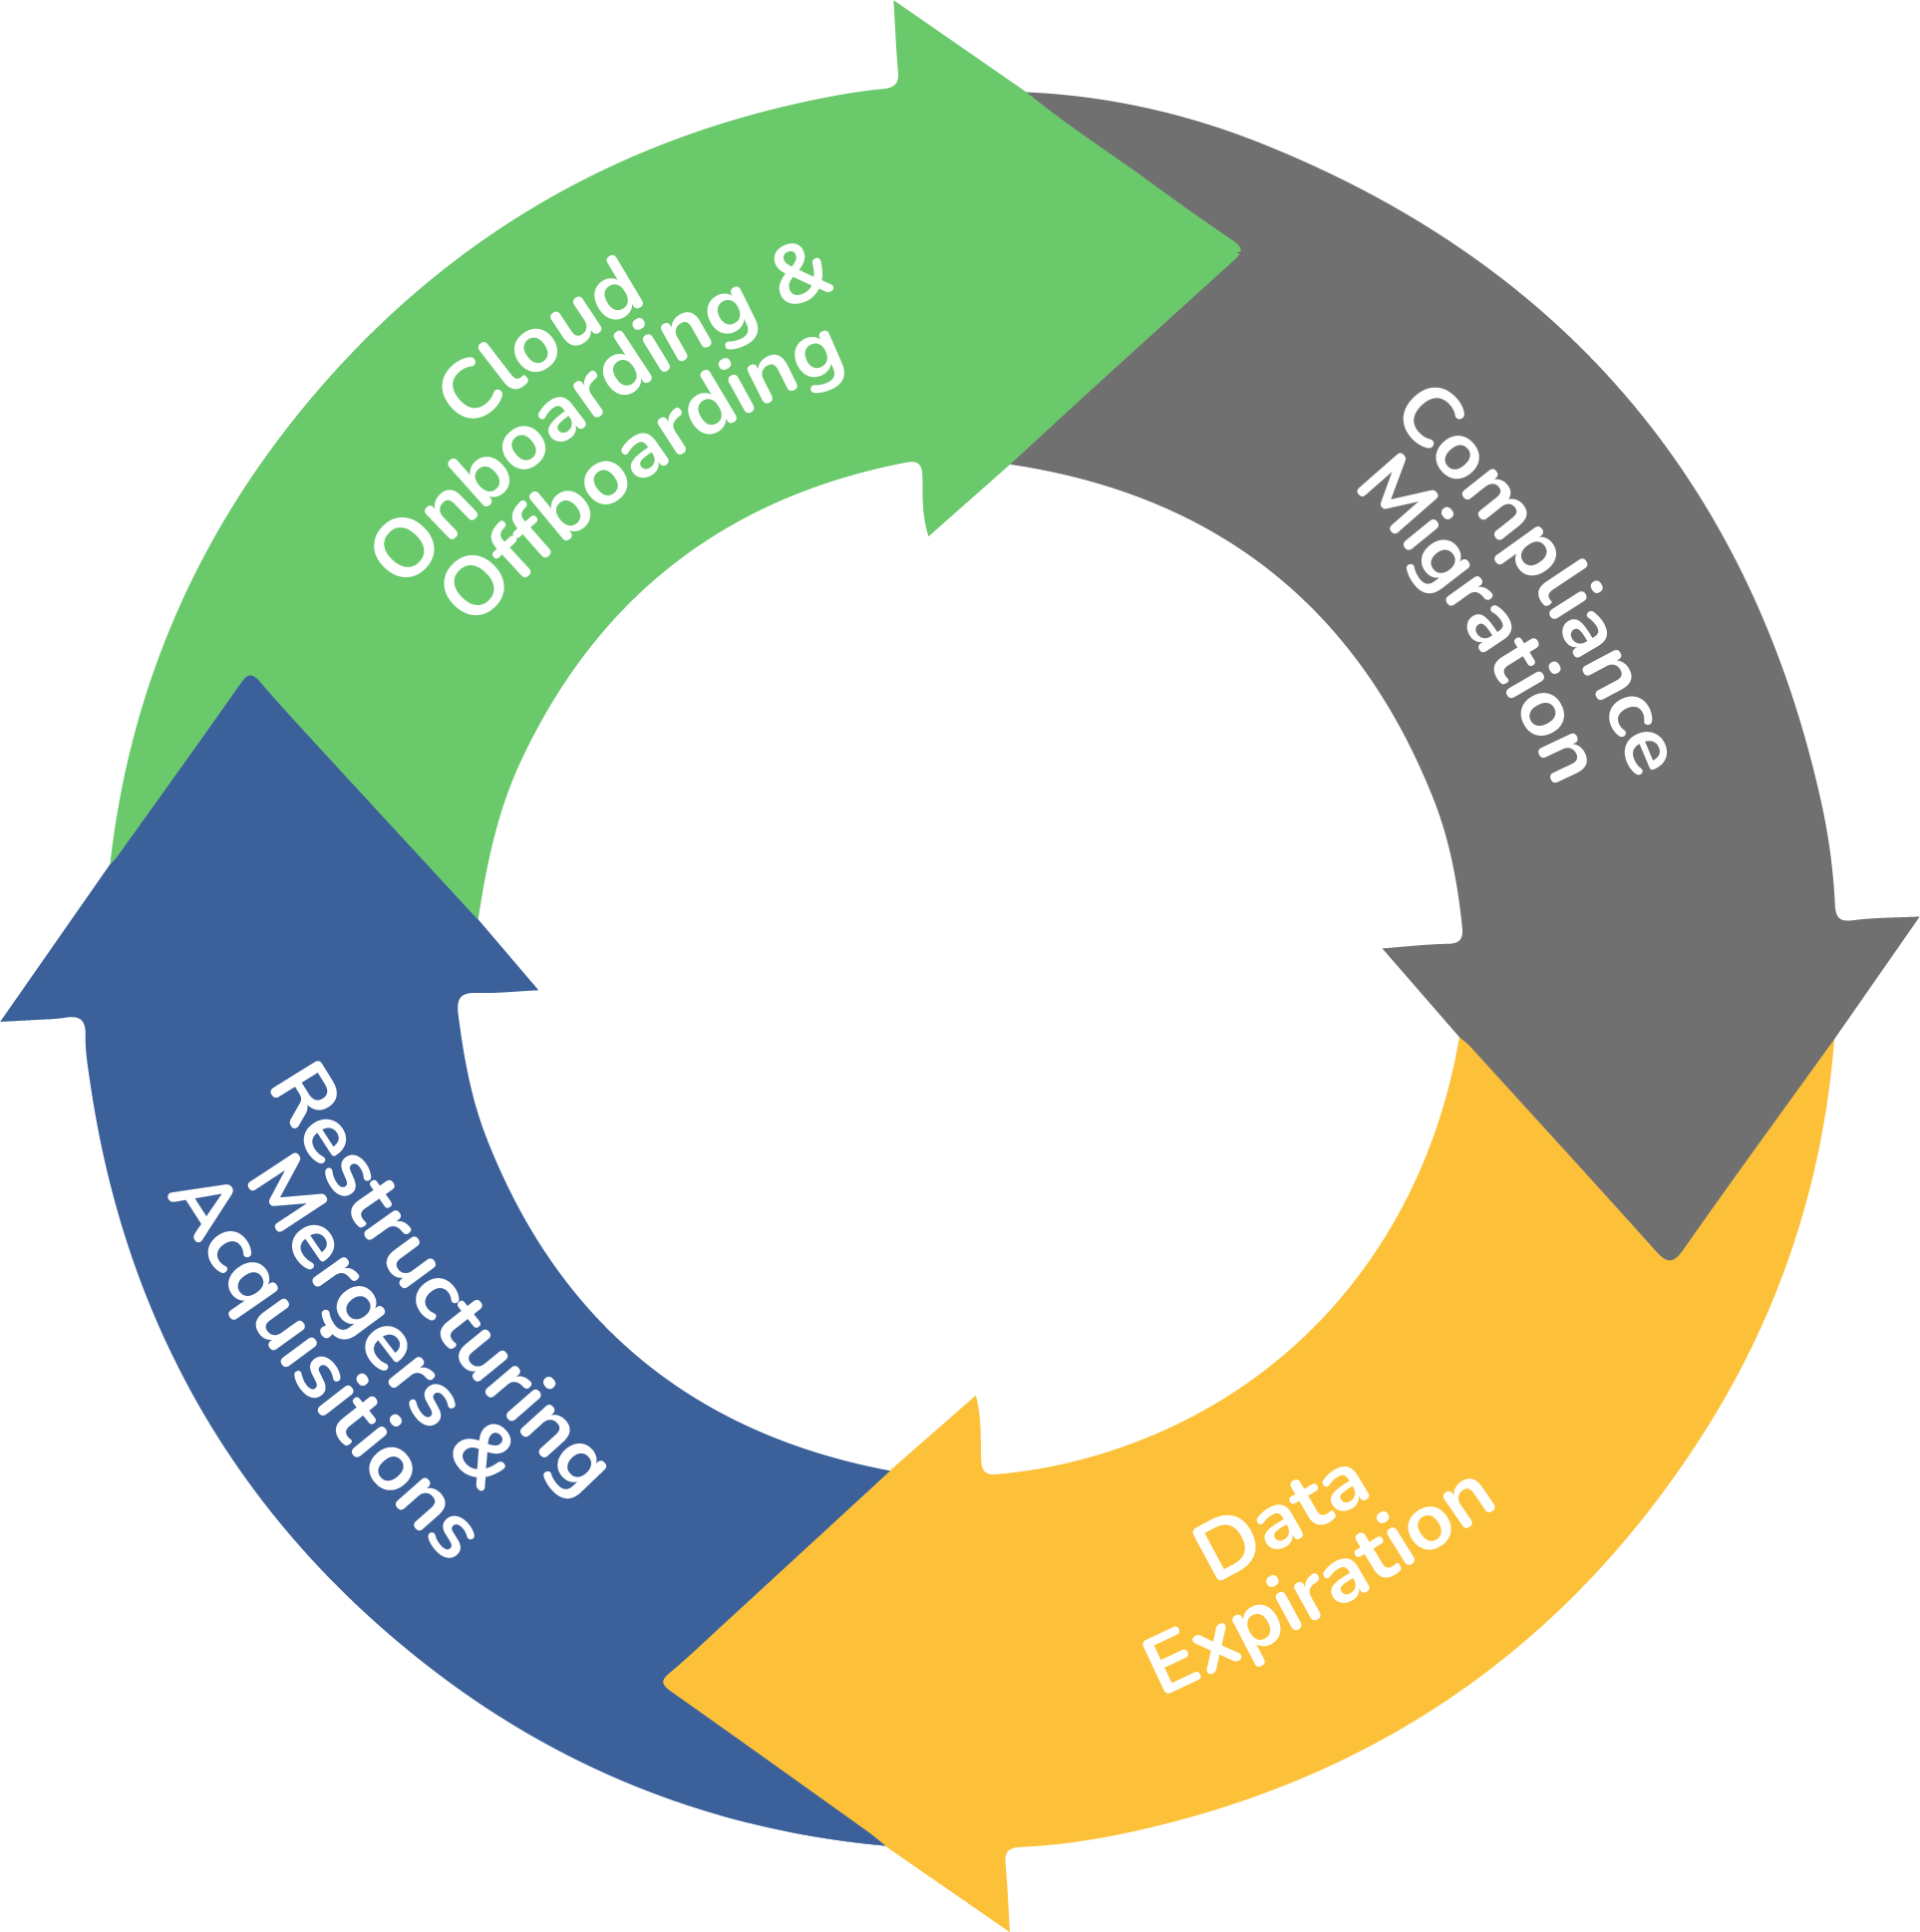 Empowering Digital Transformation Graphic   cloudficient